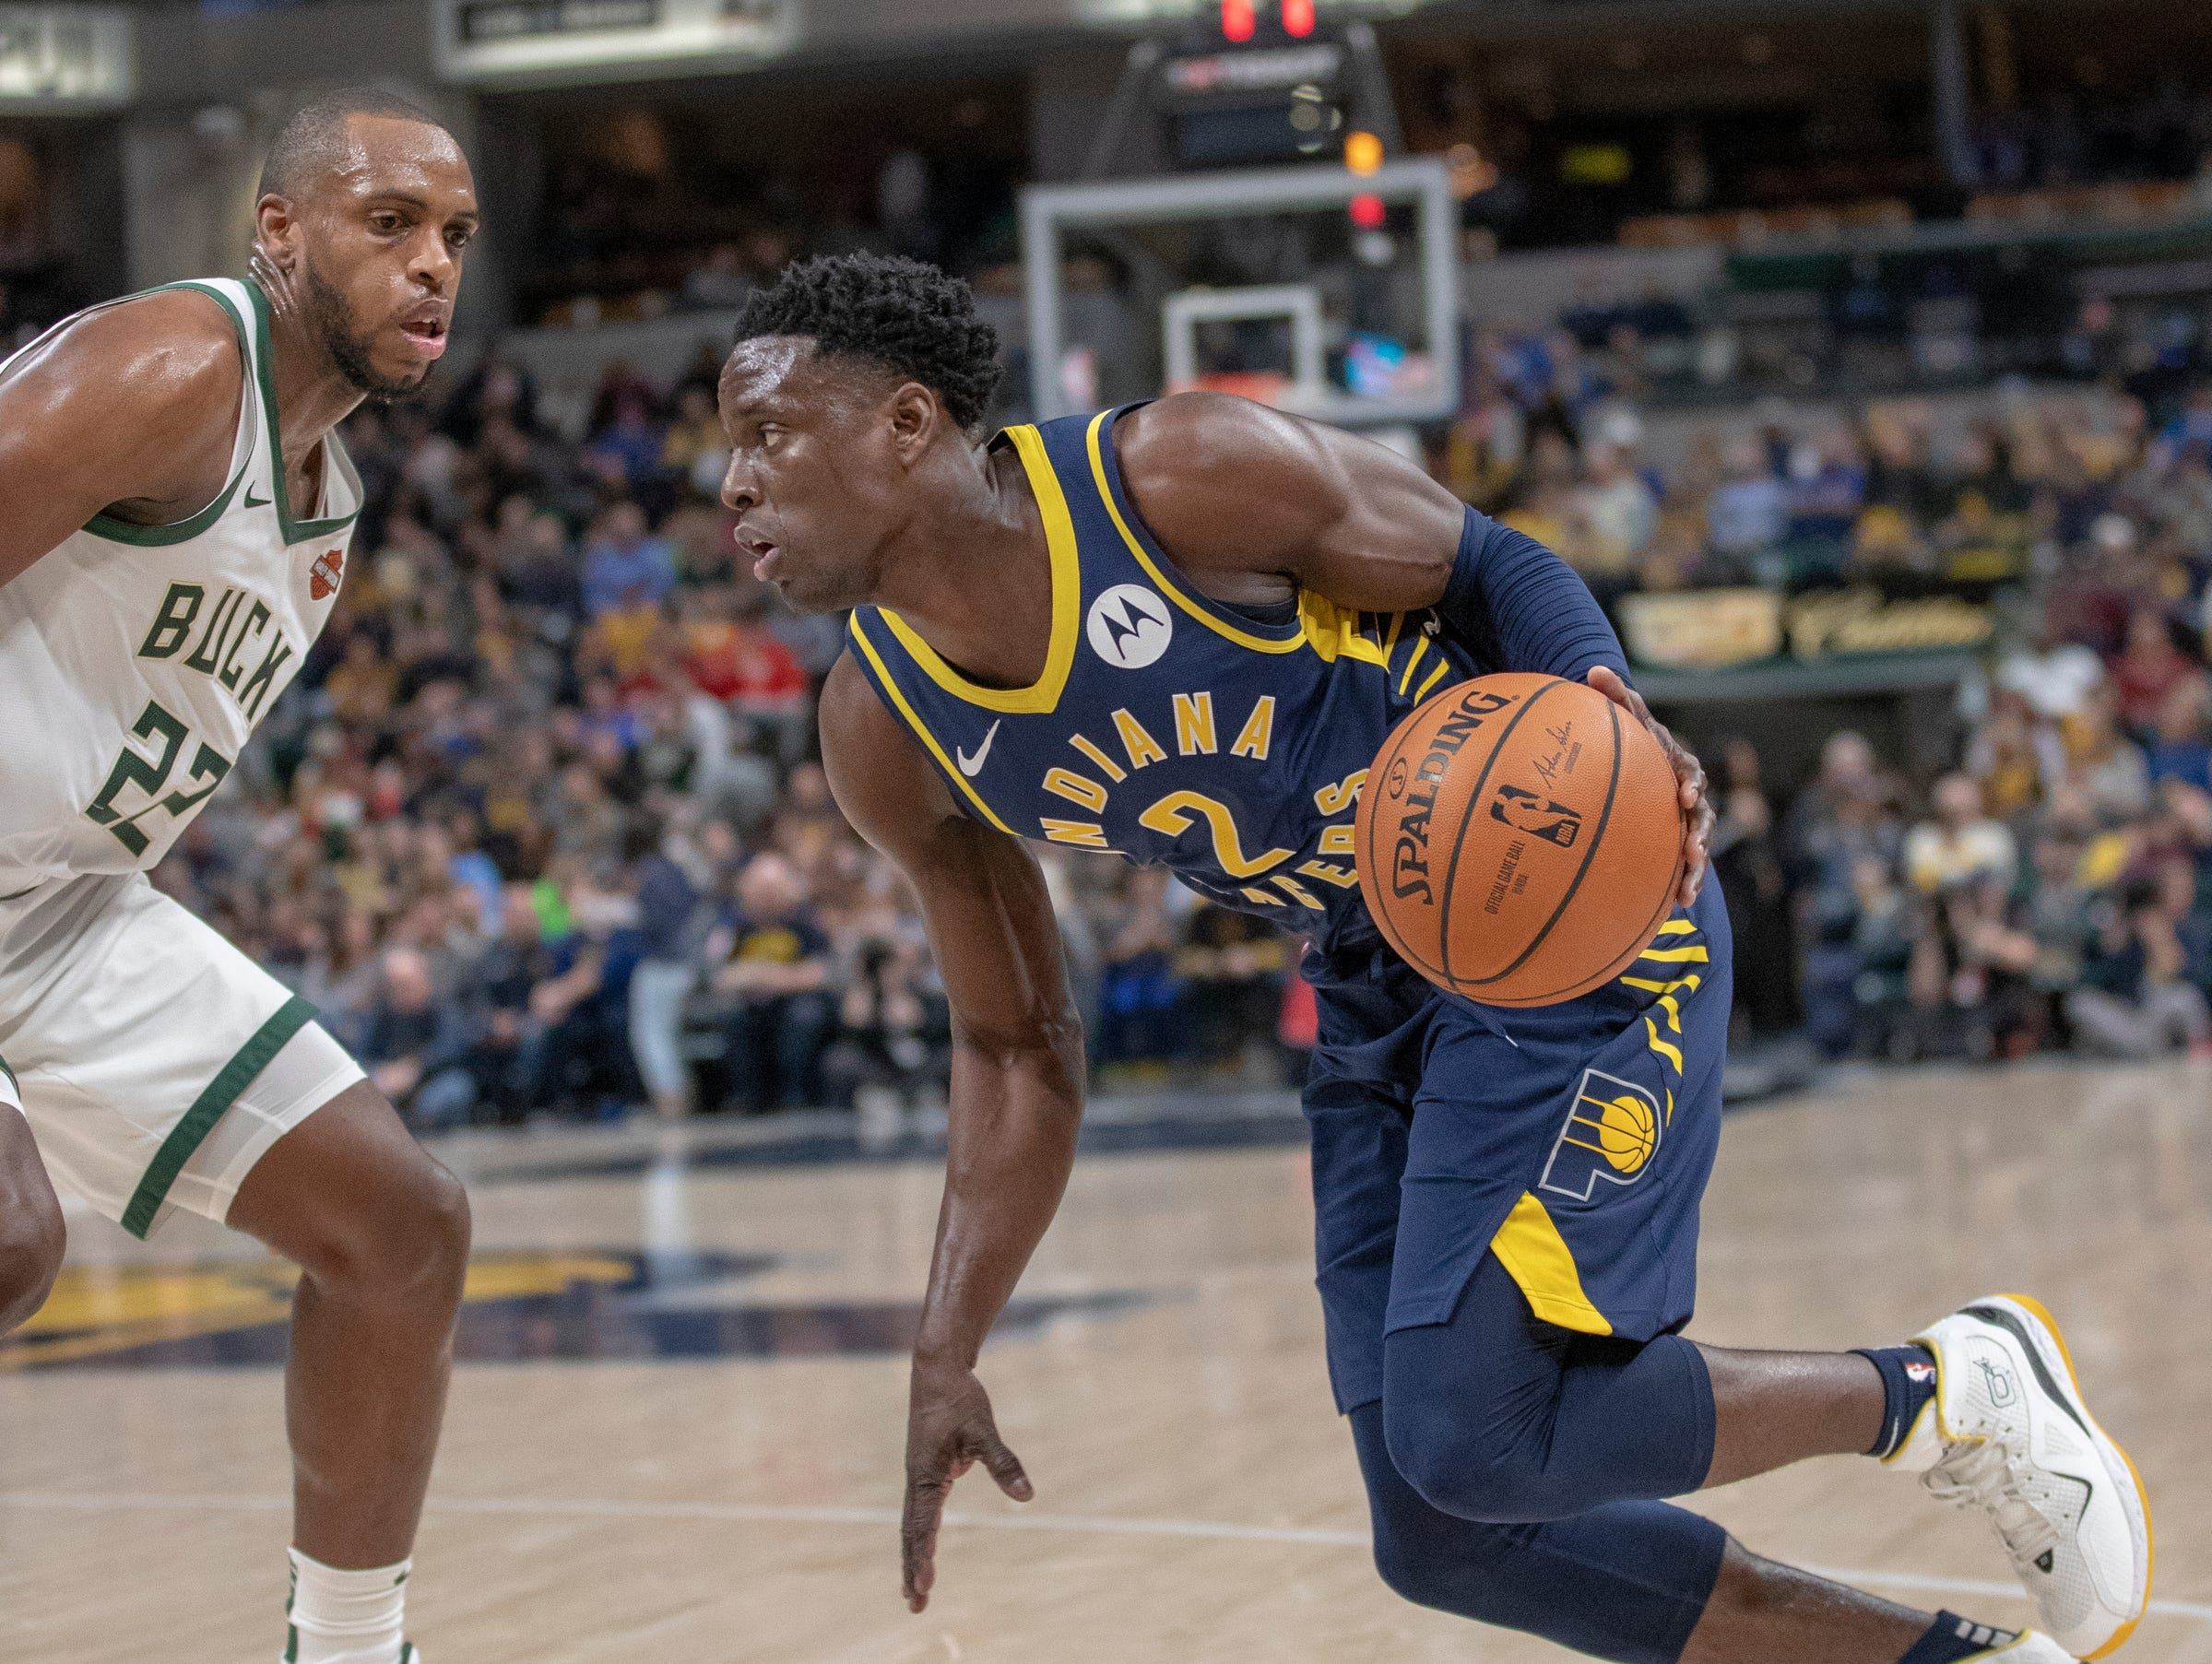 Darren Collison of the Indiana Pacers drives on Khris Middleton of the Milwaukee Bucks, Bankers Life Fieldhouse, Indianapolis, Wednesday, Feb. 13, 2019. Milwaukee won 106-97.